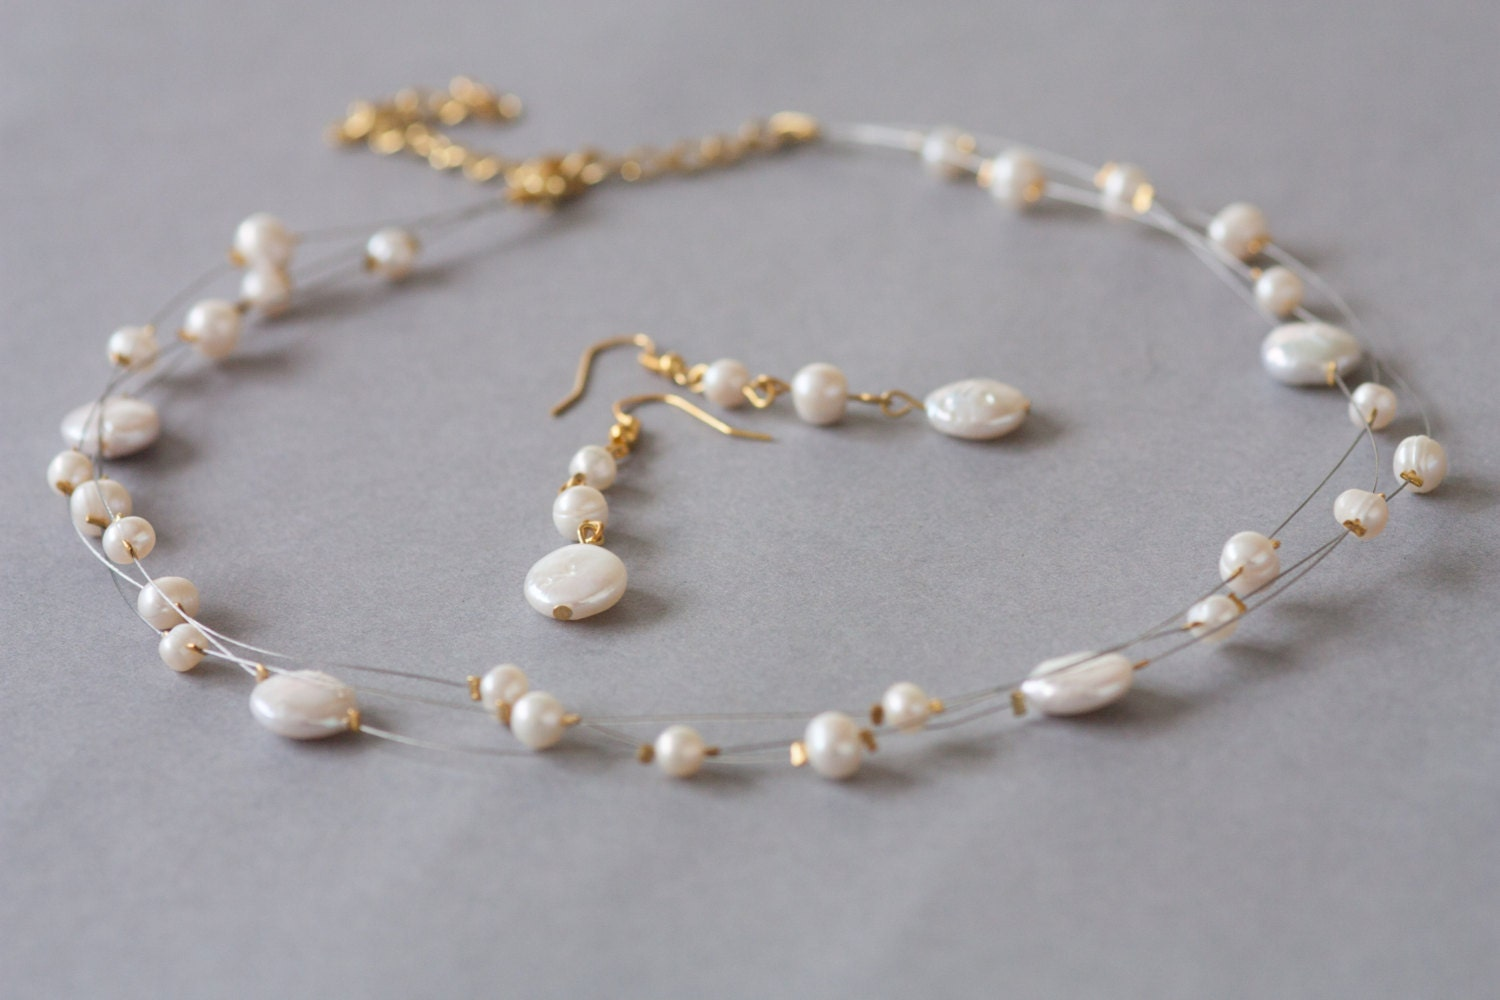 multi strand bridal illusion necklace and earrings set in ivory freshwater pearl and coin pearl from LSBJewellry on Etsy